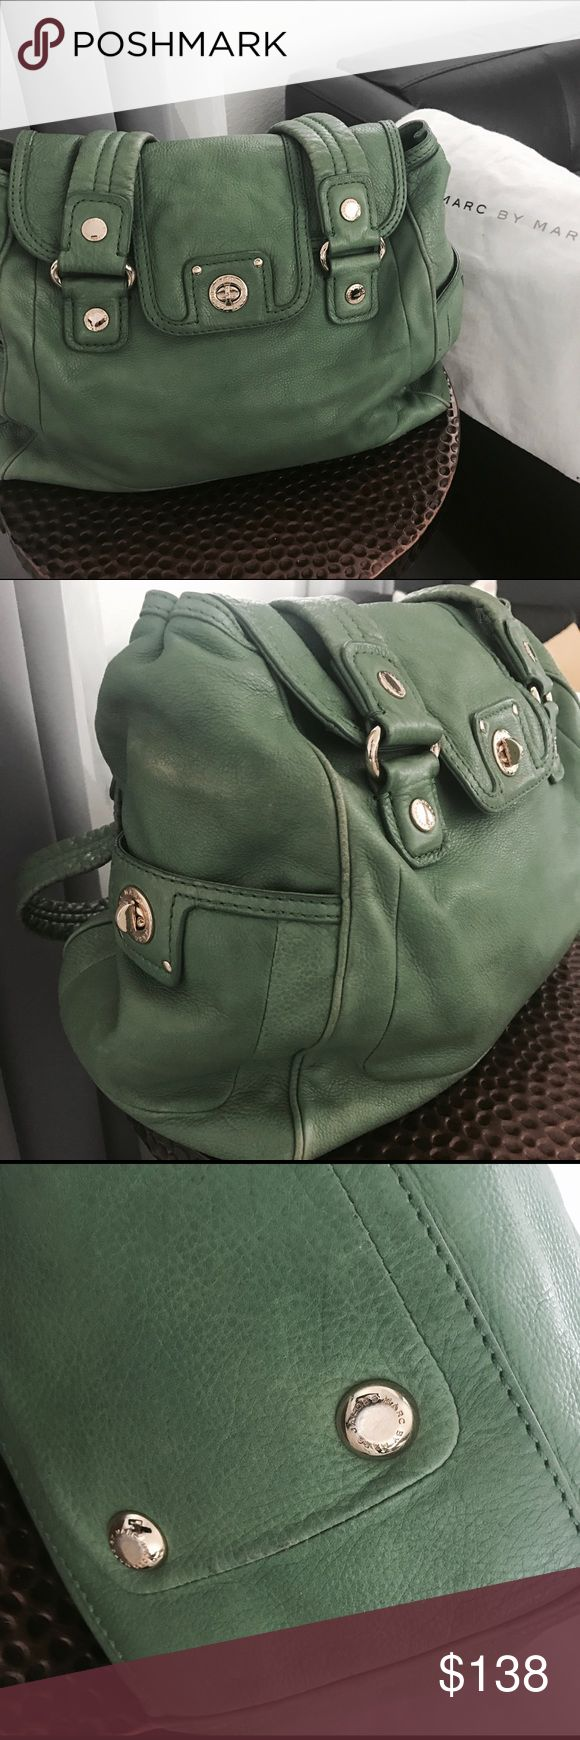 Marc by Marc Jacobs purse Marc by Marc Jacobs amazing green leather purse with gold hardware Marc by Marc Jacobs Bags Shoulder Bags